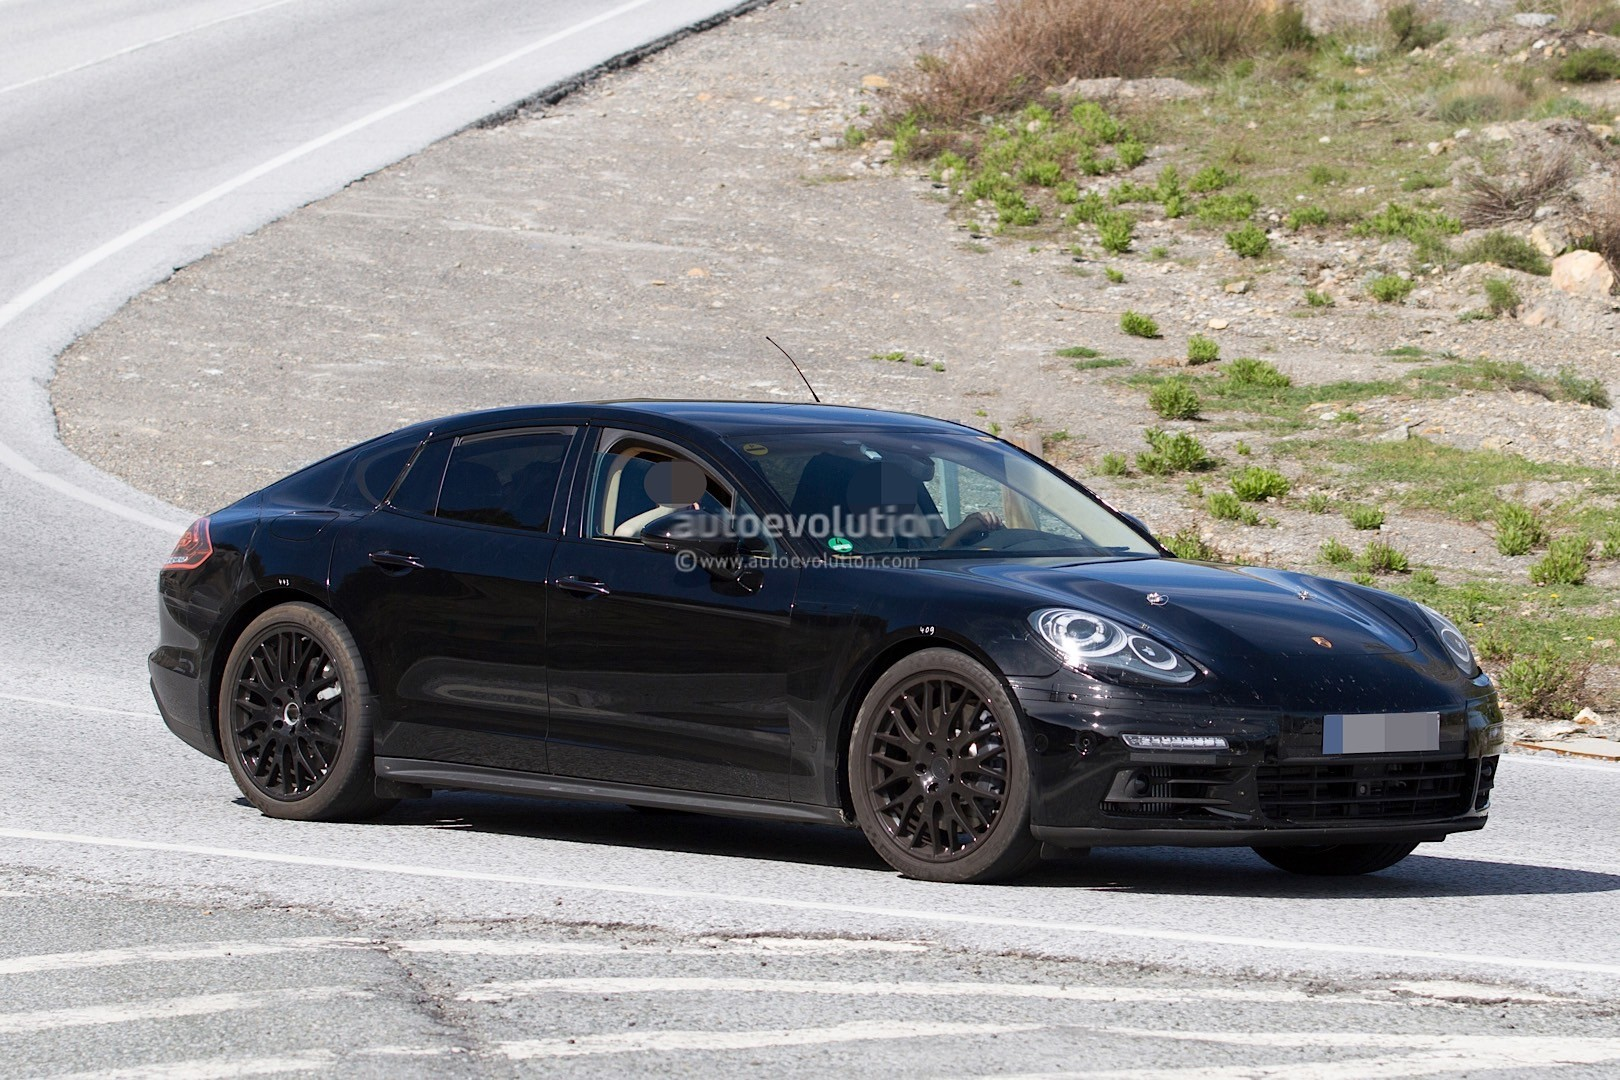 2017 porsche panamera spied for the first time in hybrid guise autoevolution. Black Bedroom Furniture Sets. Home Design Ideas